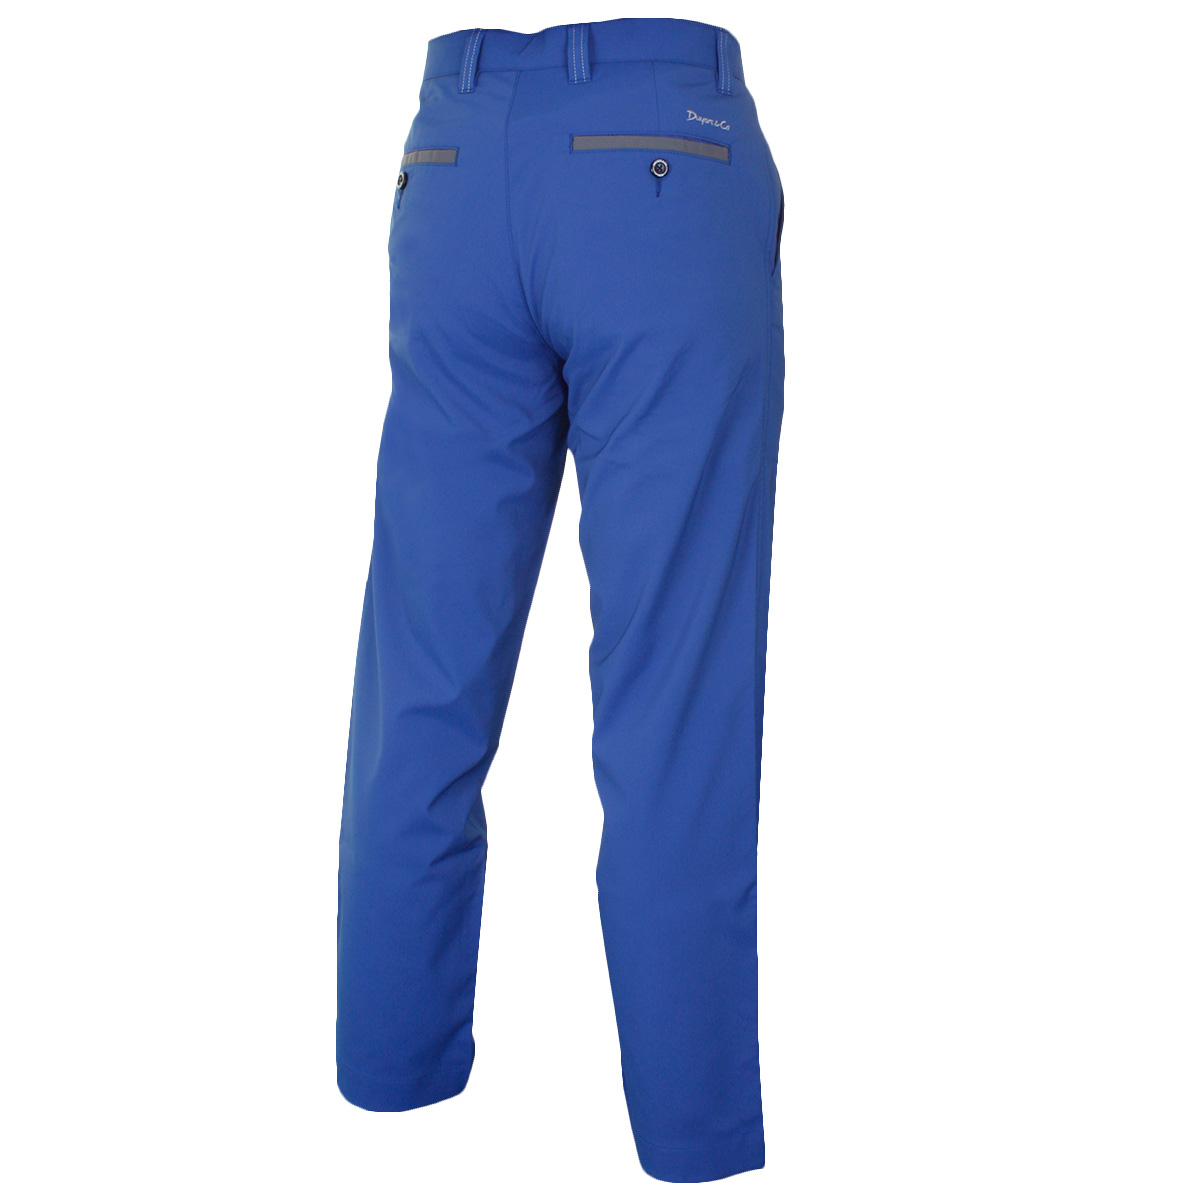 Dwyers-amp-Co-Mens-Matchplay-Stretch-Lightweight-Golf-Trousers-38-OFF-RRP thumbnail 27